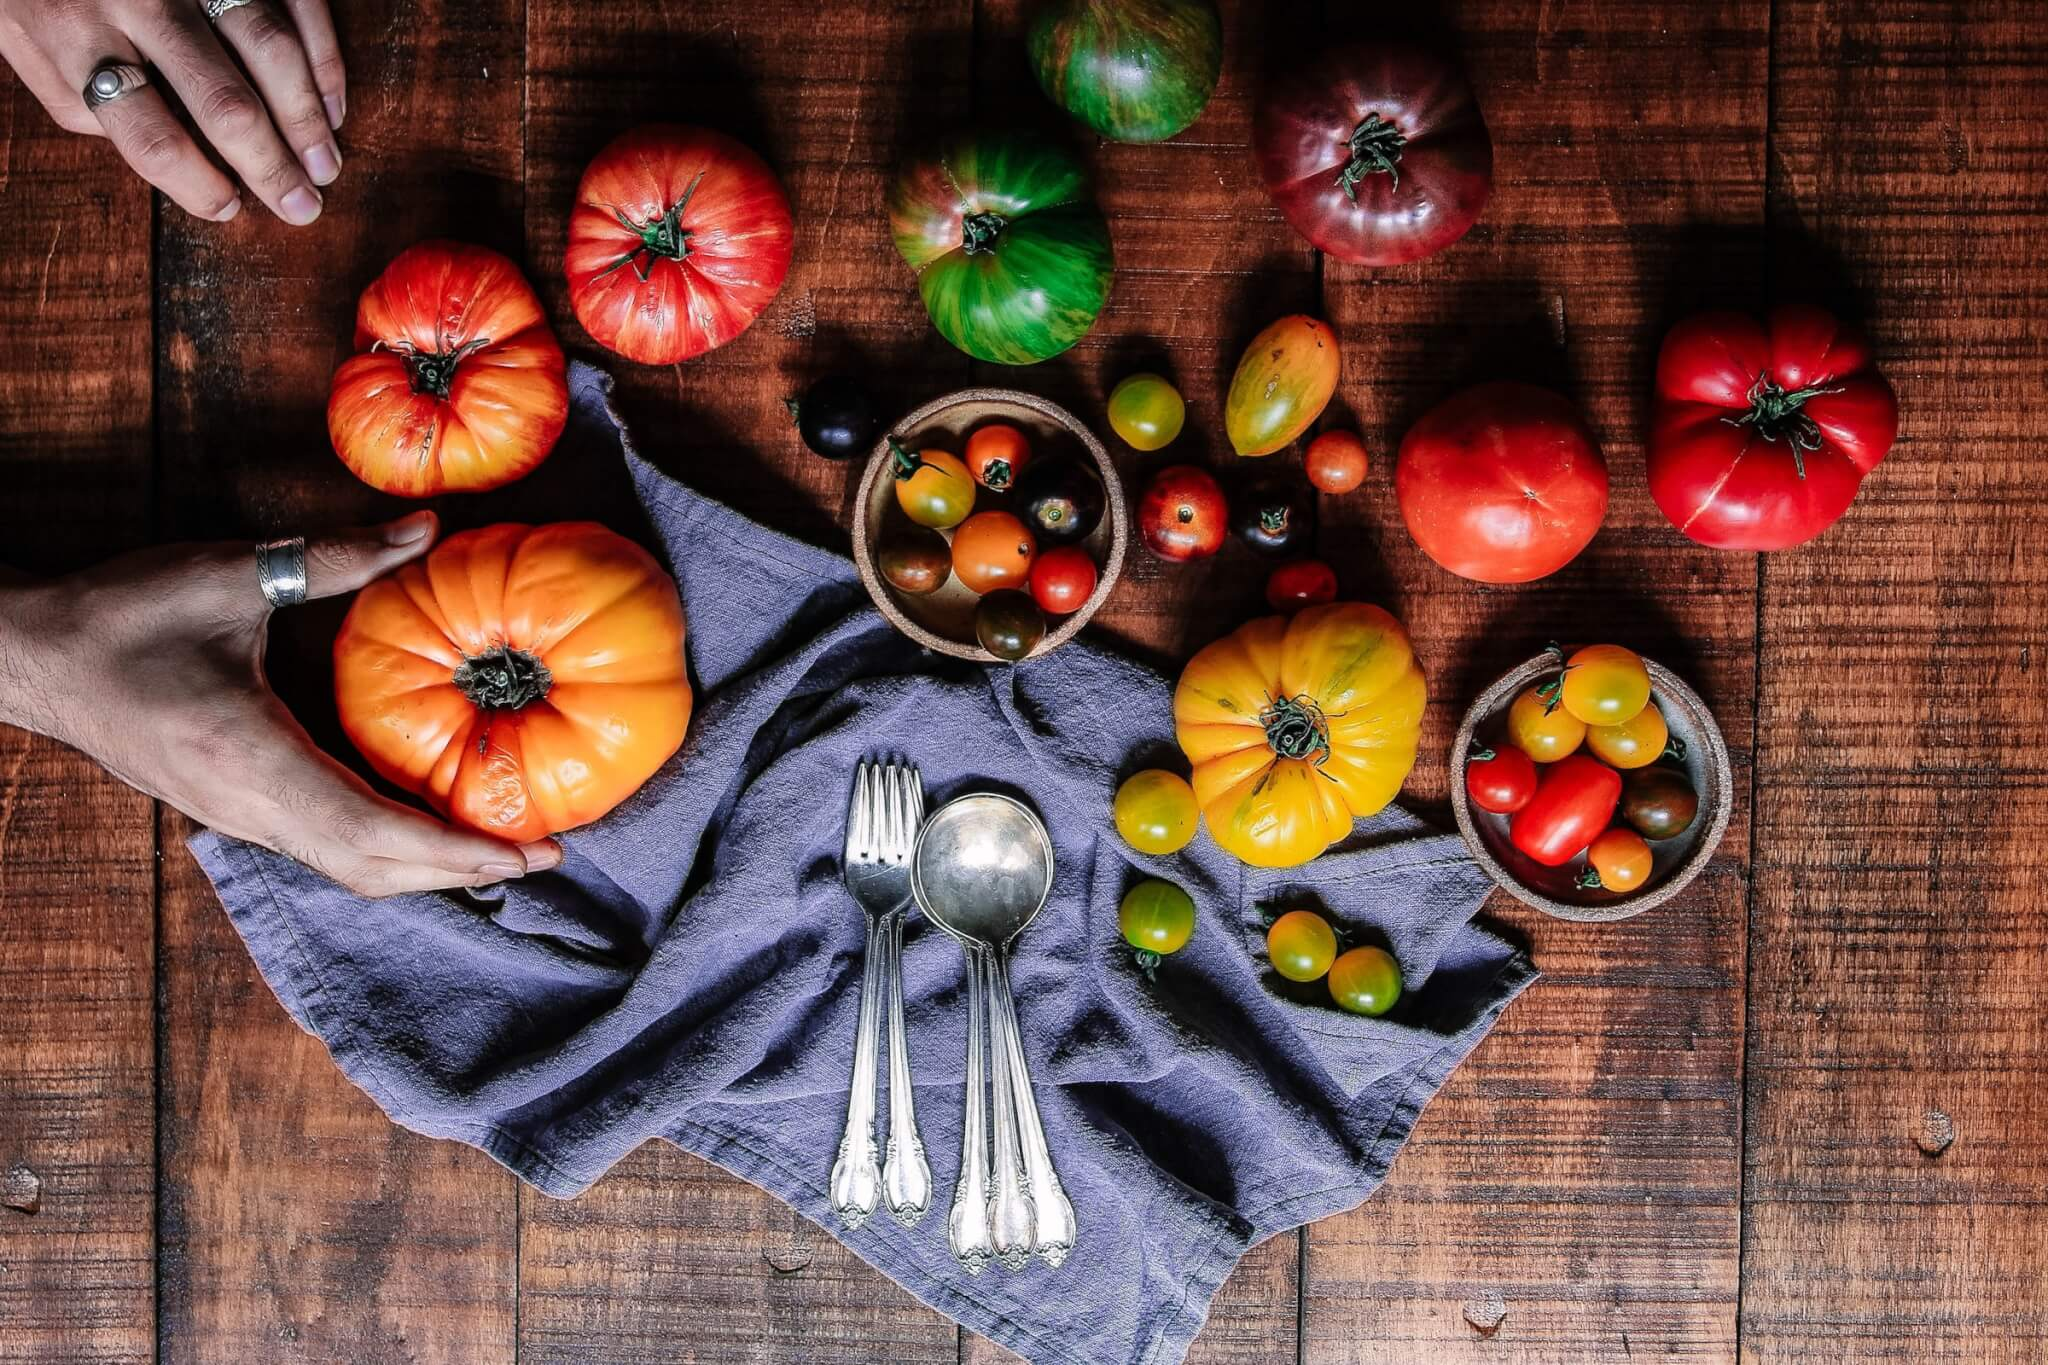 tomatoes on table with utensils